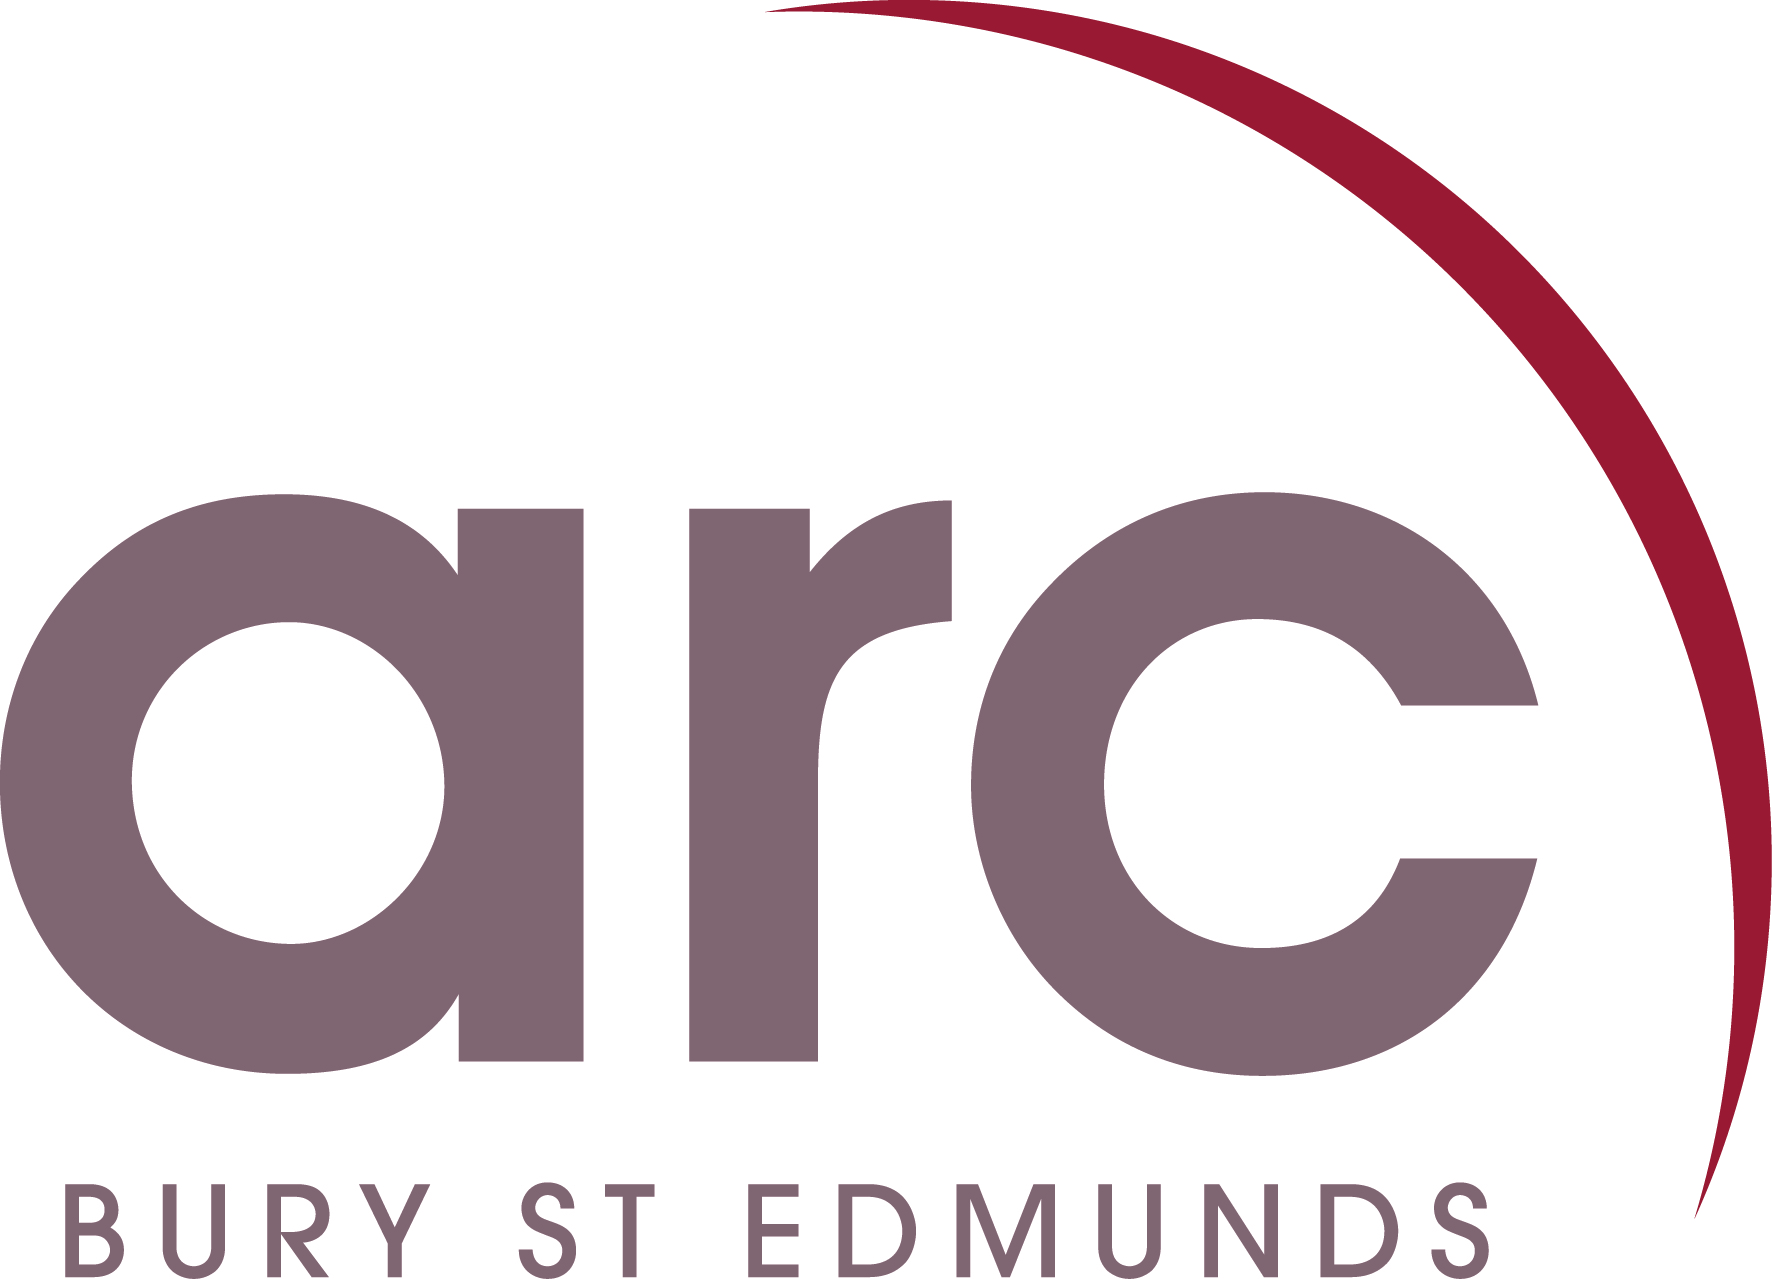 This years expanded festival is made possible with the kind support of The Arc Shopping Centre.